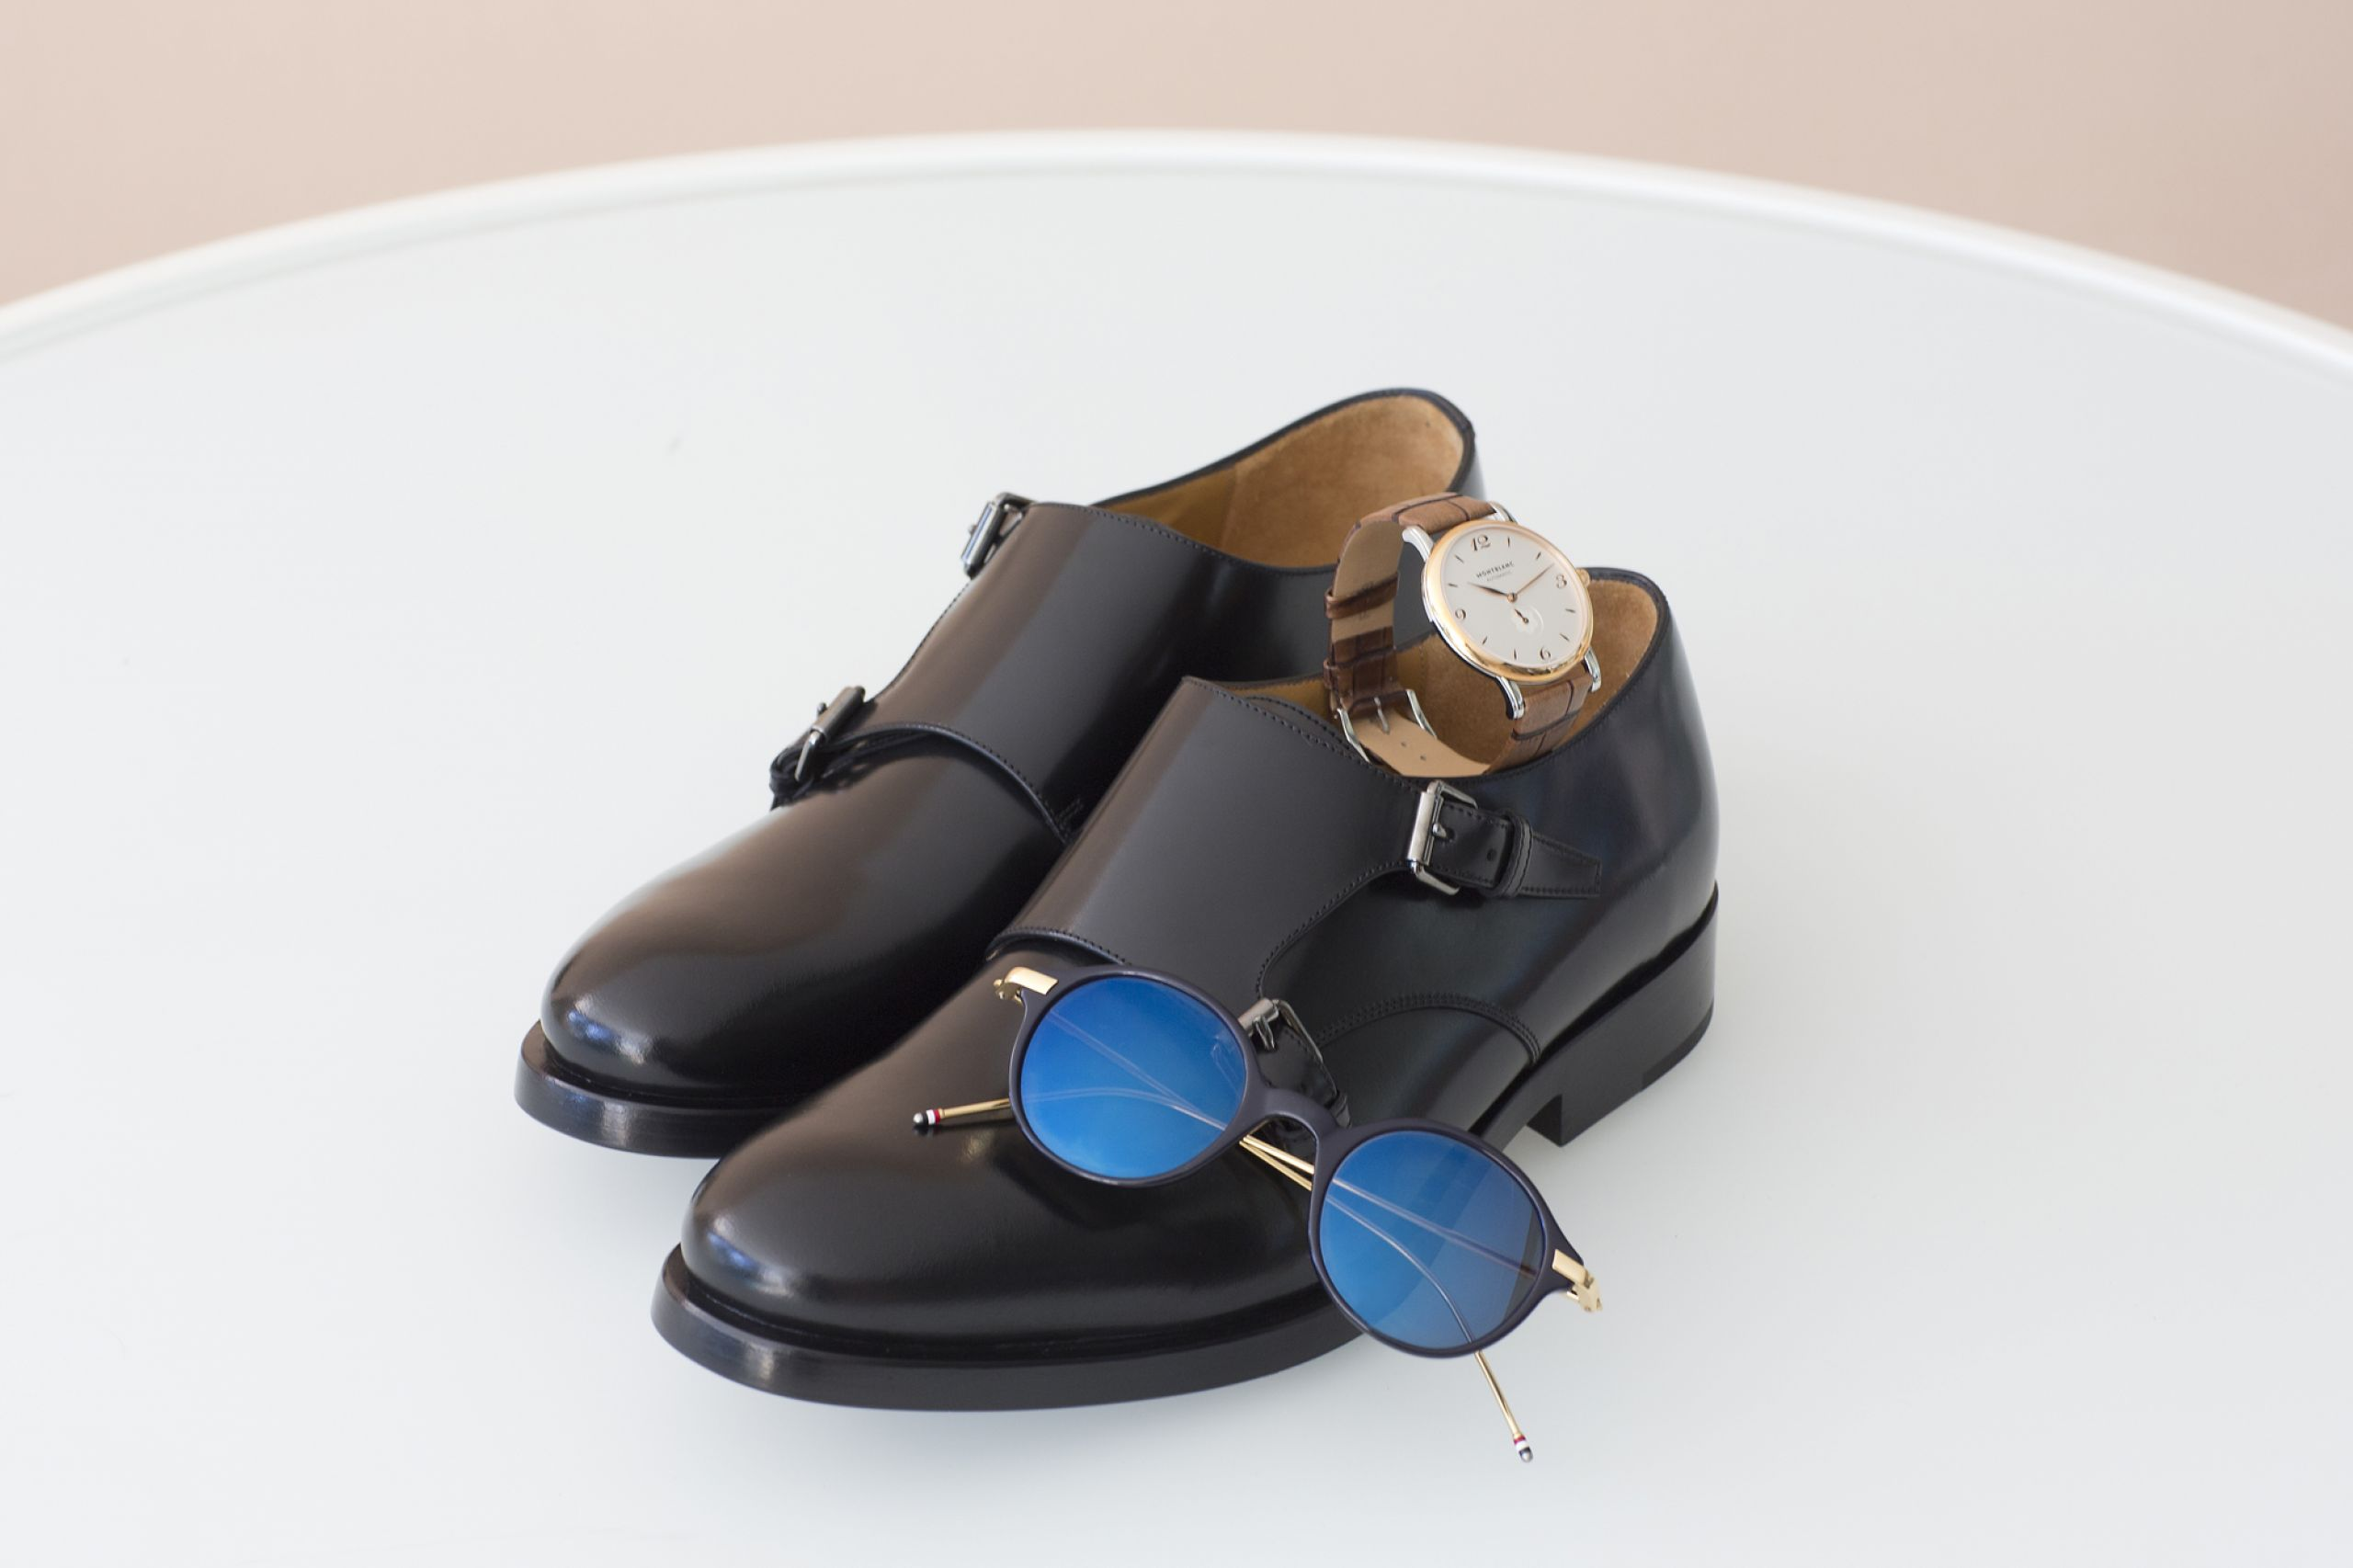 thom browne shades montblanc watch valentino shoes